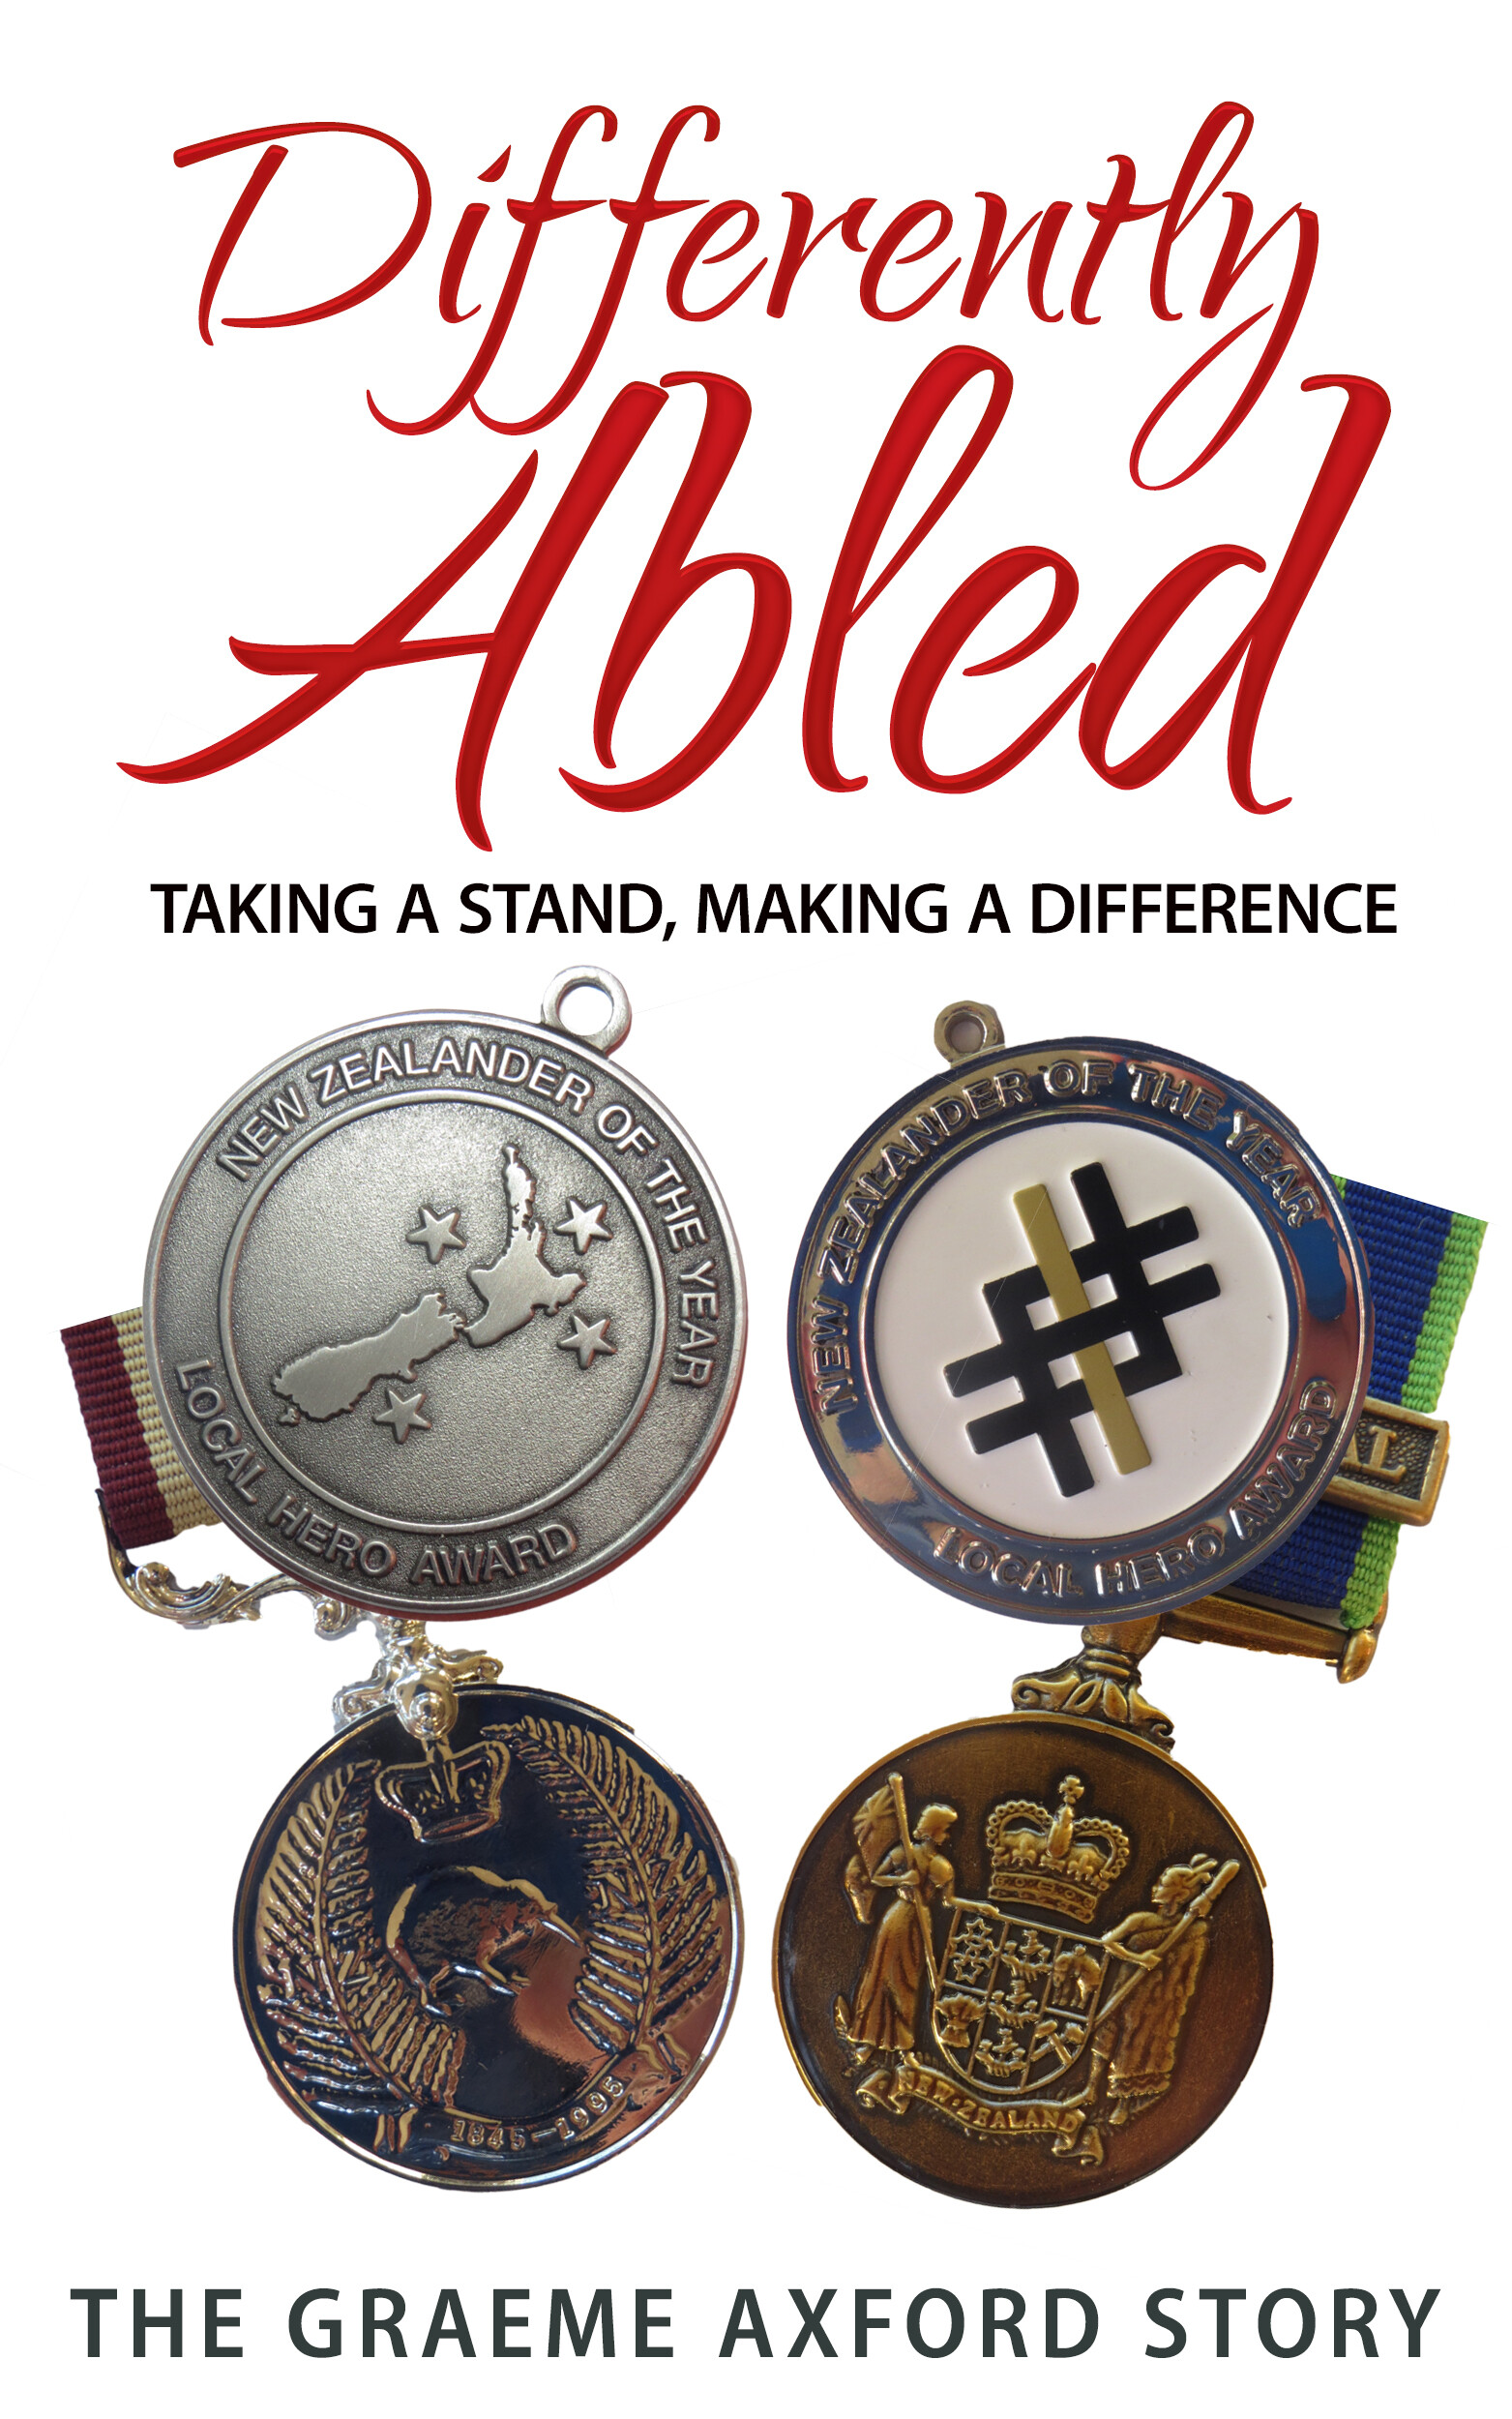 ArtStation - Differently Abled Book Cover Medals, James Russell